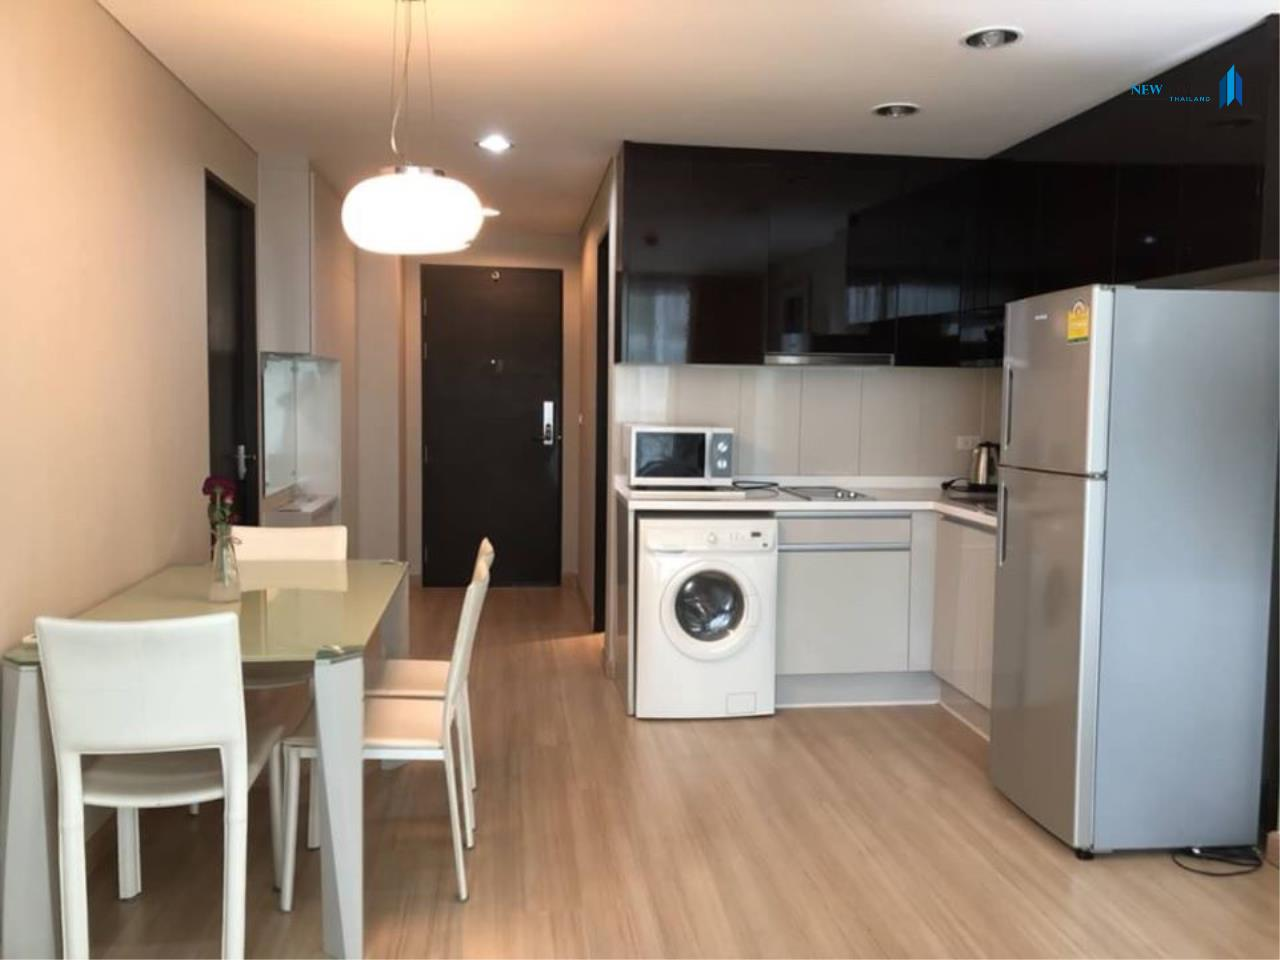 New Living Thailand Agency's For rent, The Address Pathumwan, near Ratchathewi BTS, 2 bedrooms, 60 sq.m., east, fully furnished 8